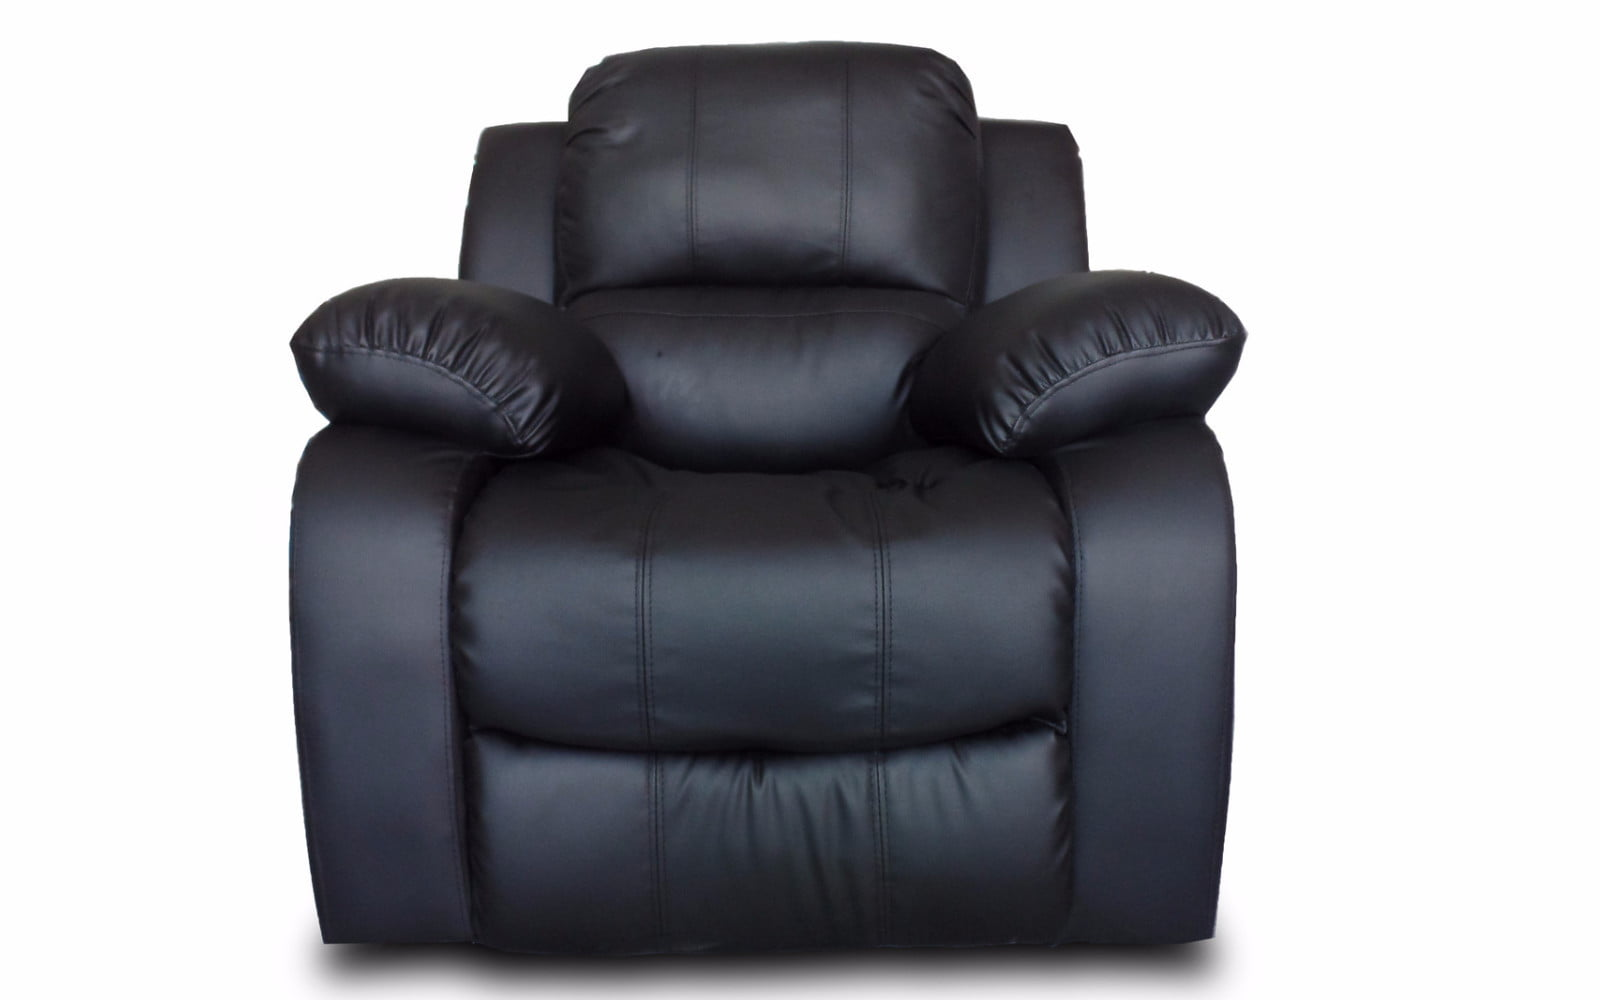 classic oversize and overstuffed single seat bonded leather recliner chair walmartcom